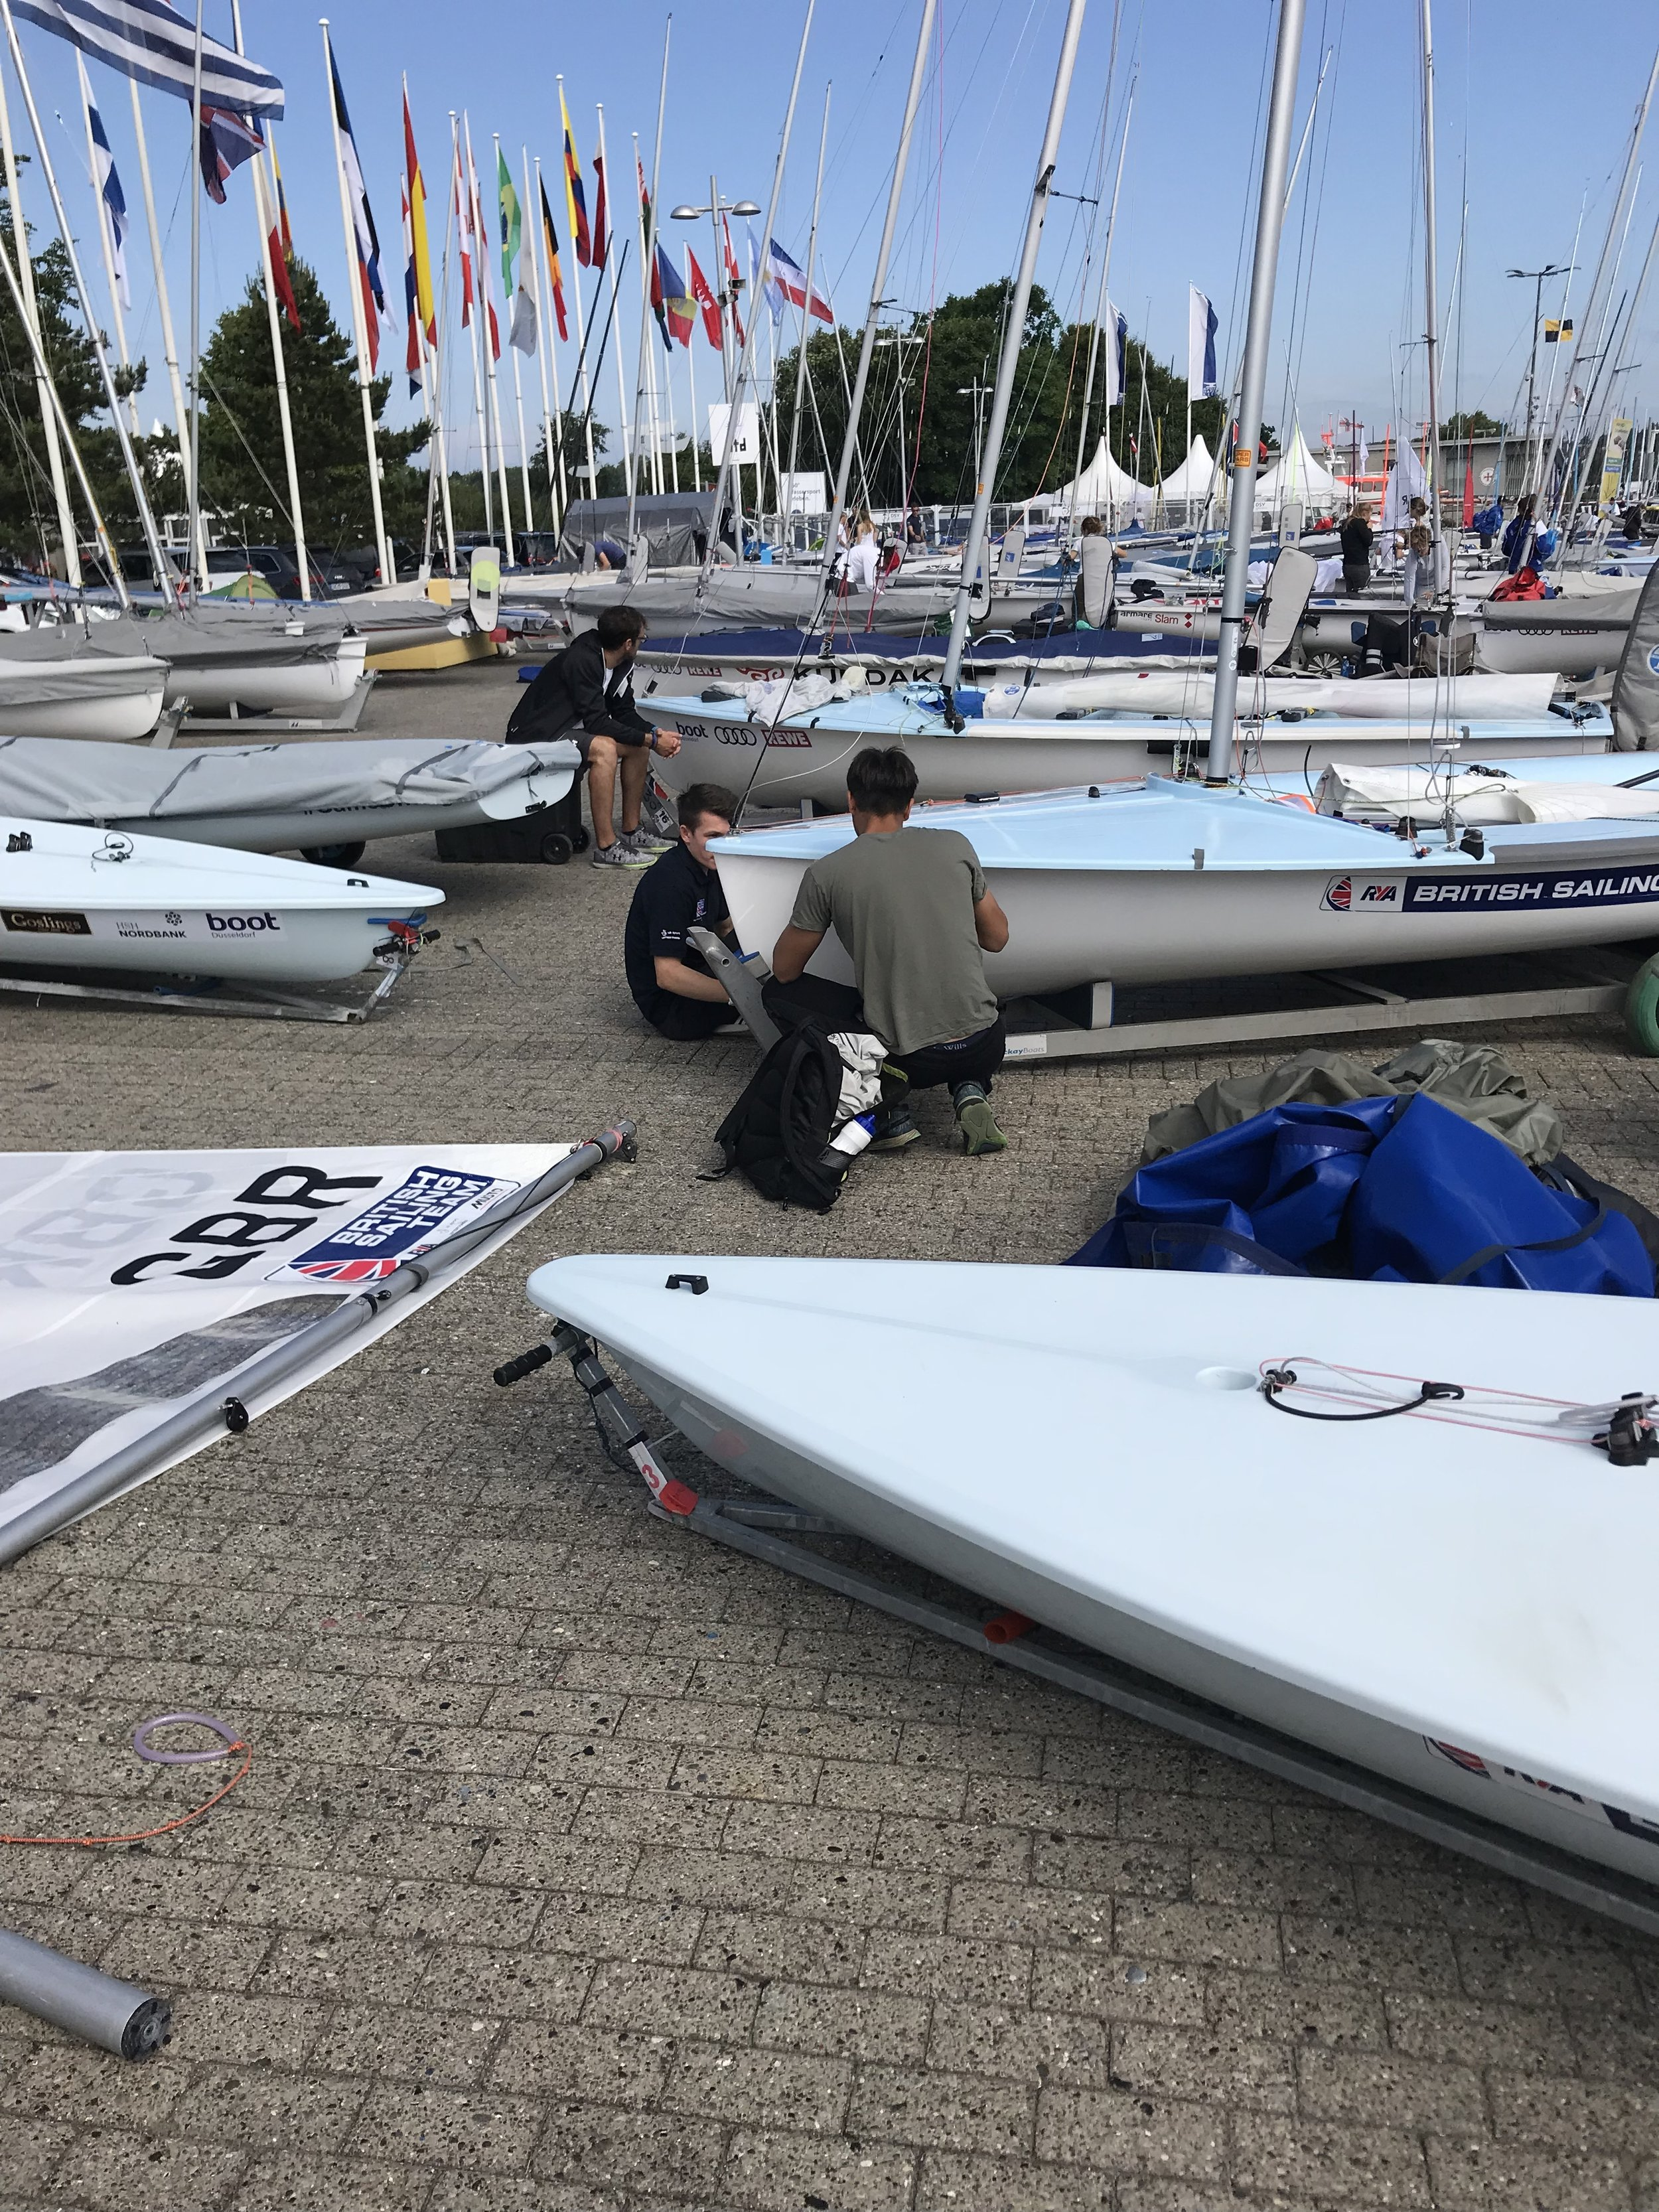 It was nice to be next to my brother Ben with his 470 next to me in the boatpark.